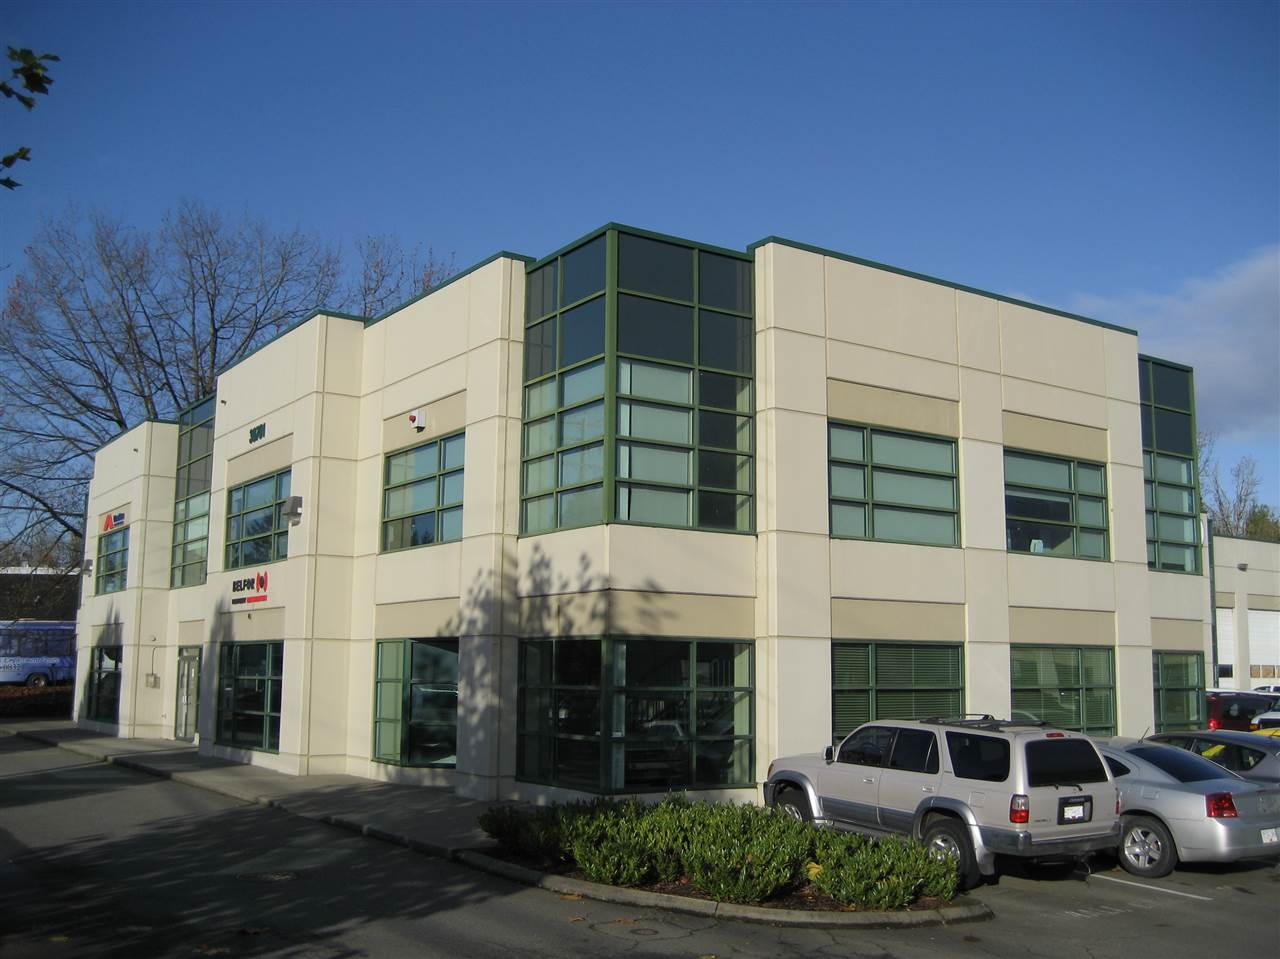 Listings chilliwack commercial real estate property listings lease for sale - Small commercial rental space photos ...